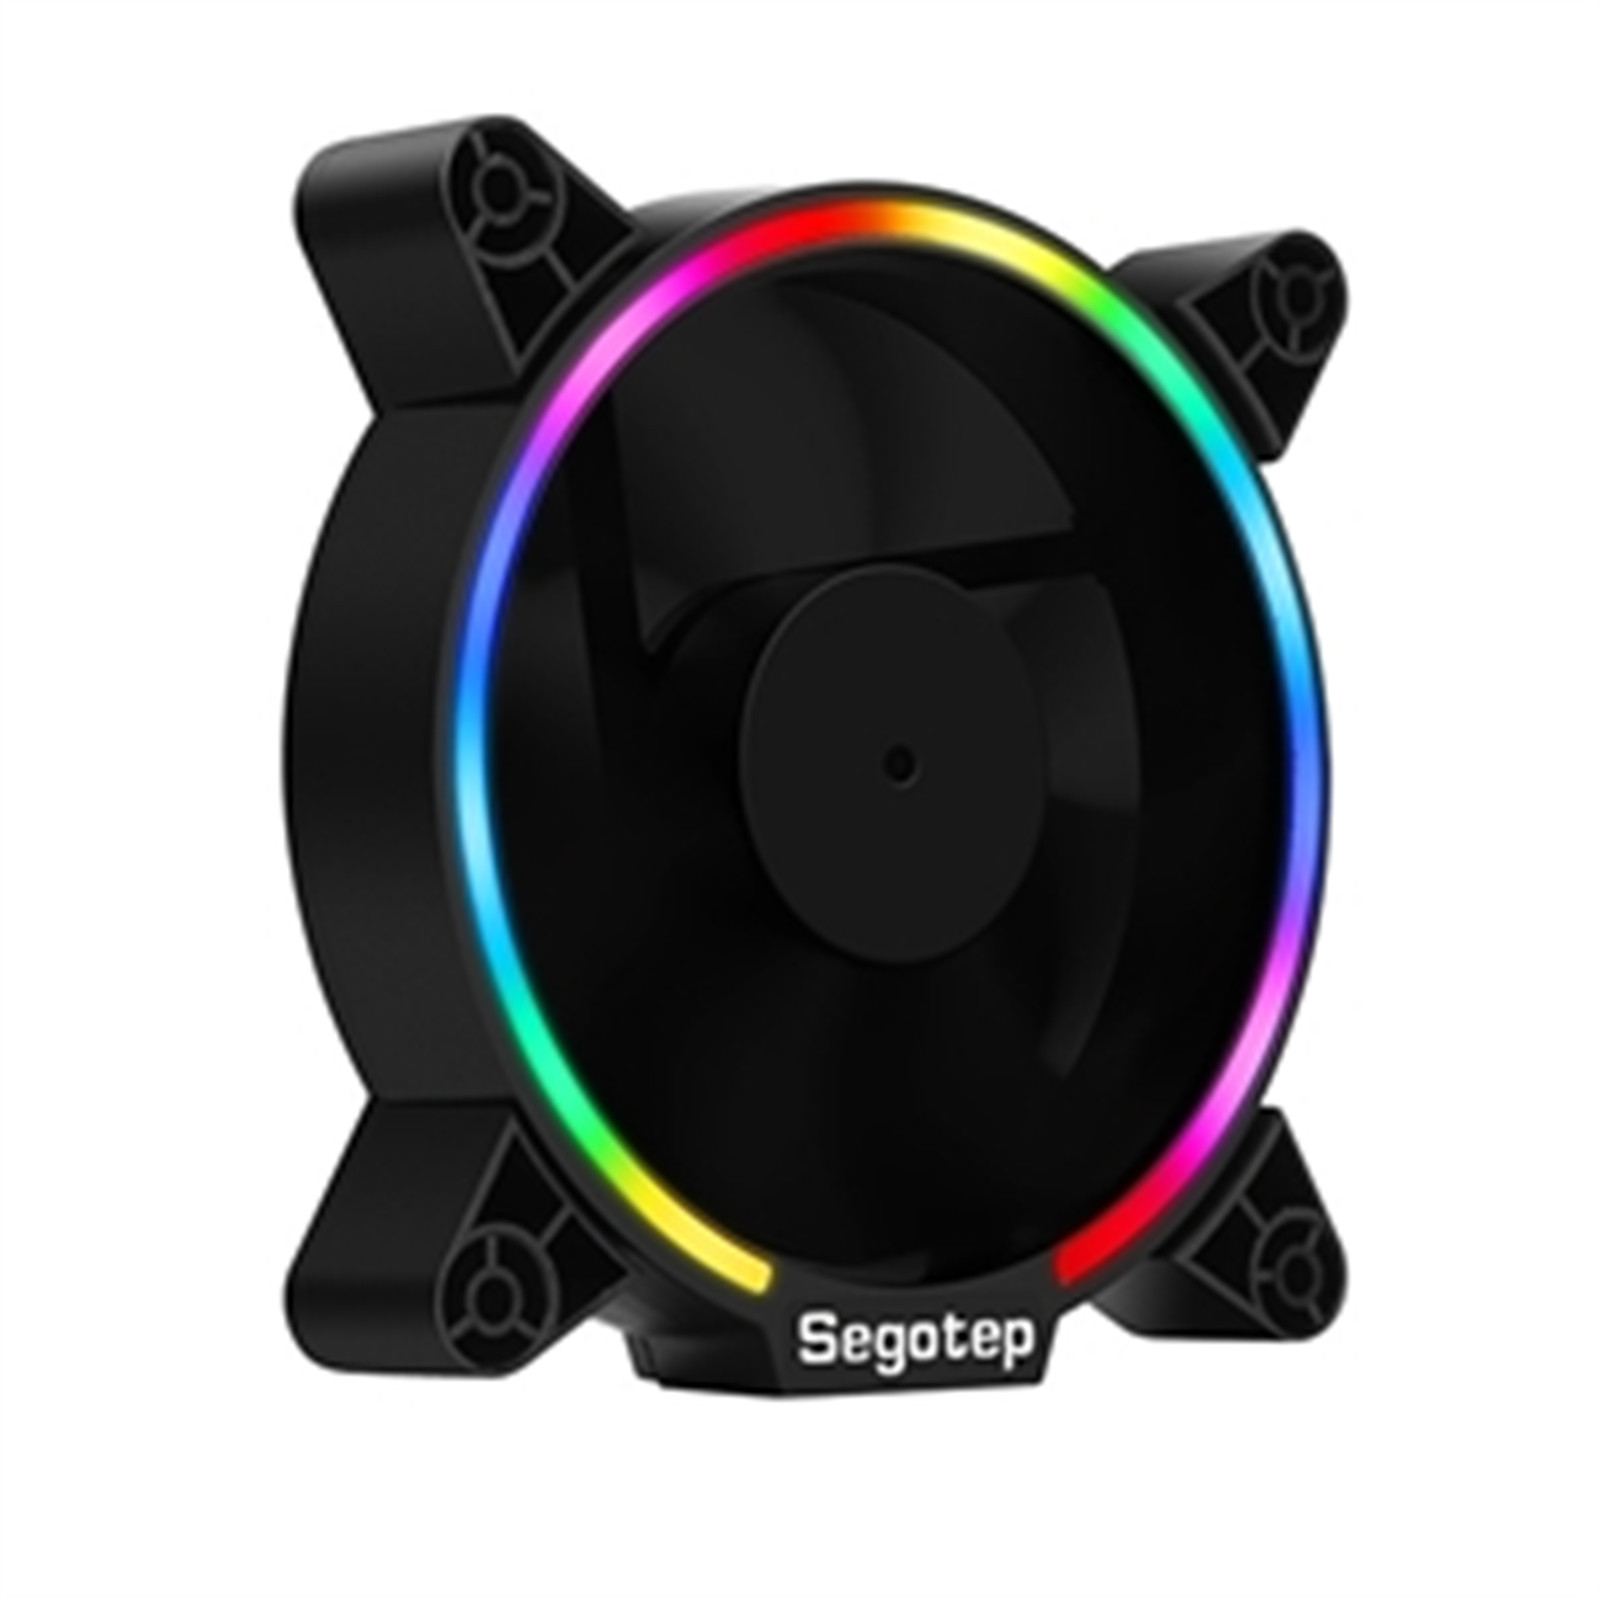 Buy the Segotep Pro Vibrant S 120 120MM RGB Fan support ASUS AURA SYNC /  MSI    ( Pro Vibrant S 120 ) online